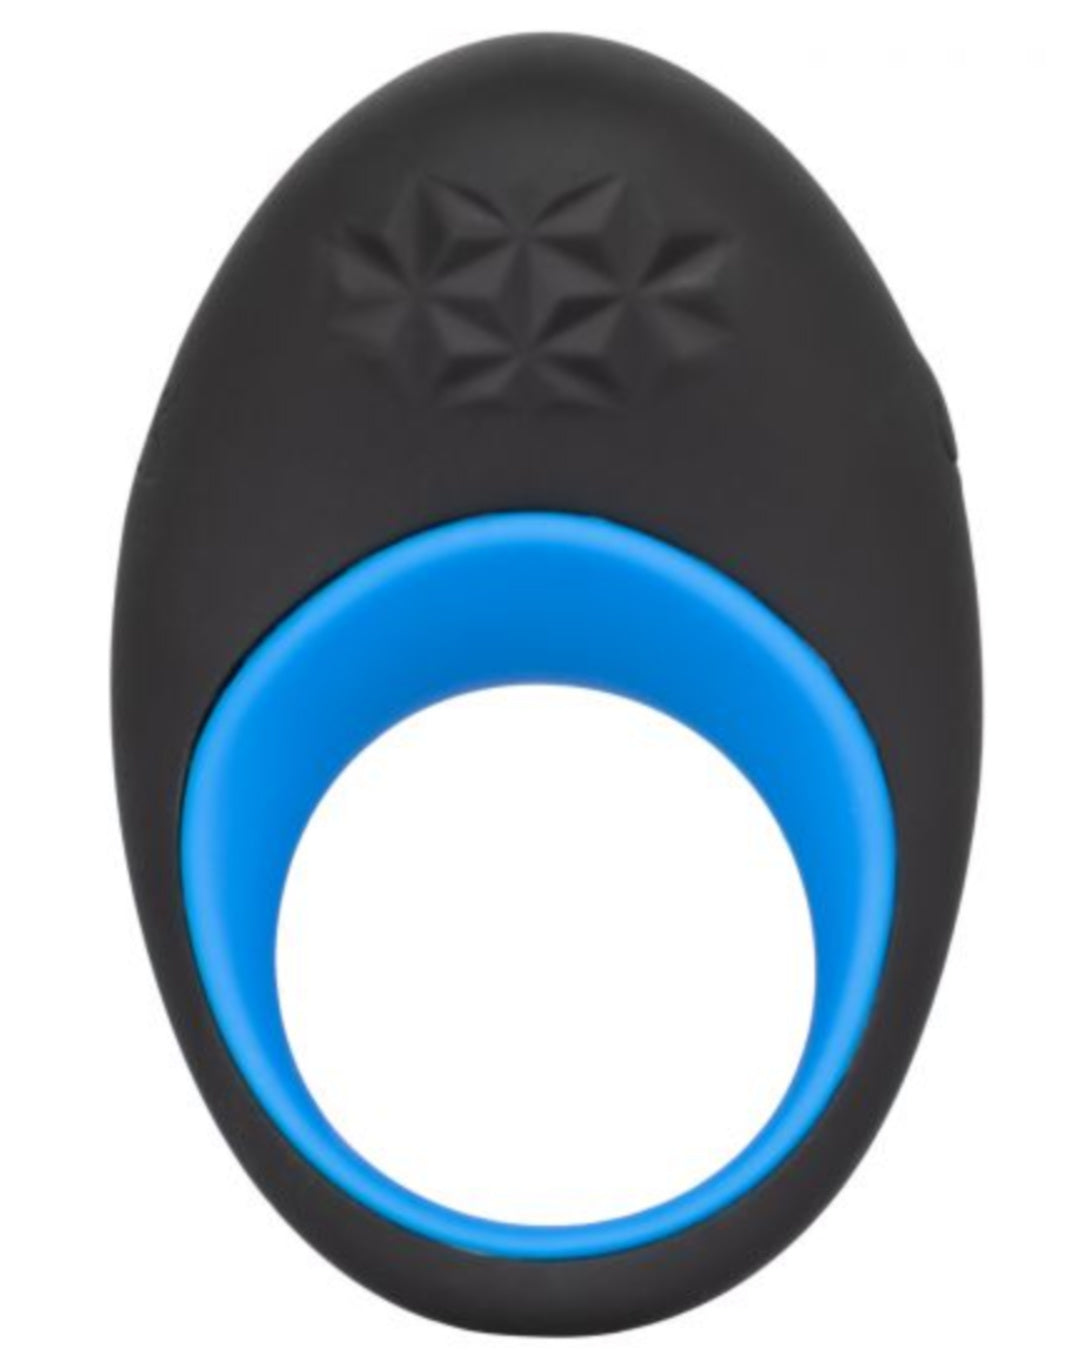 Link Up Max Textured Silicone Vibrating Cock Ring